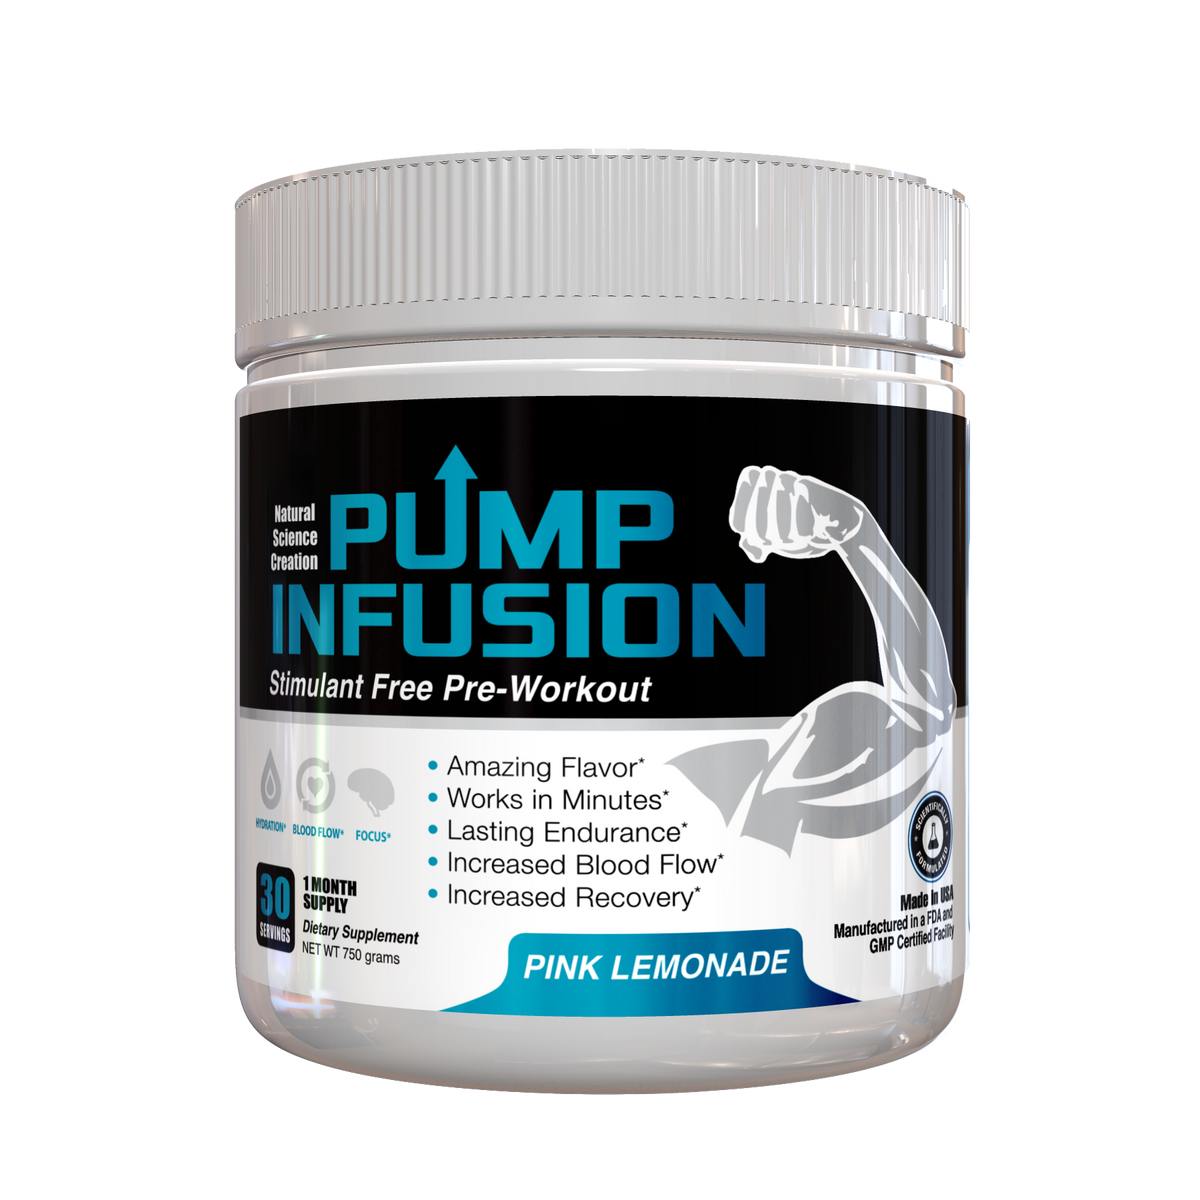 NEW! Pump Infusion Pink Lemonade (Non-Stimulant)